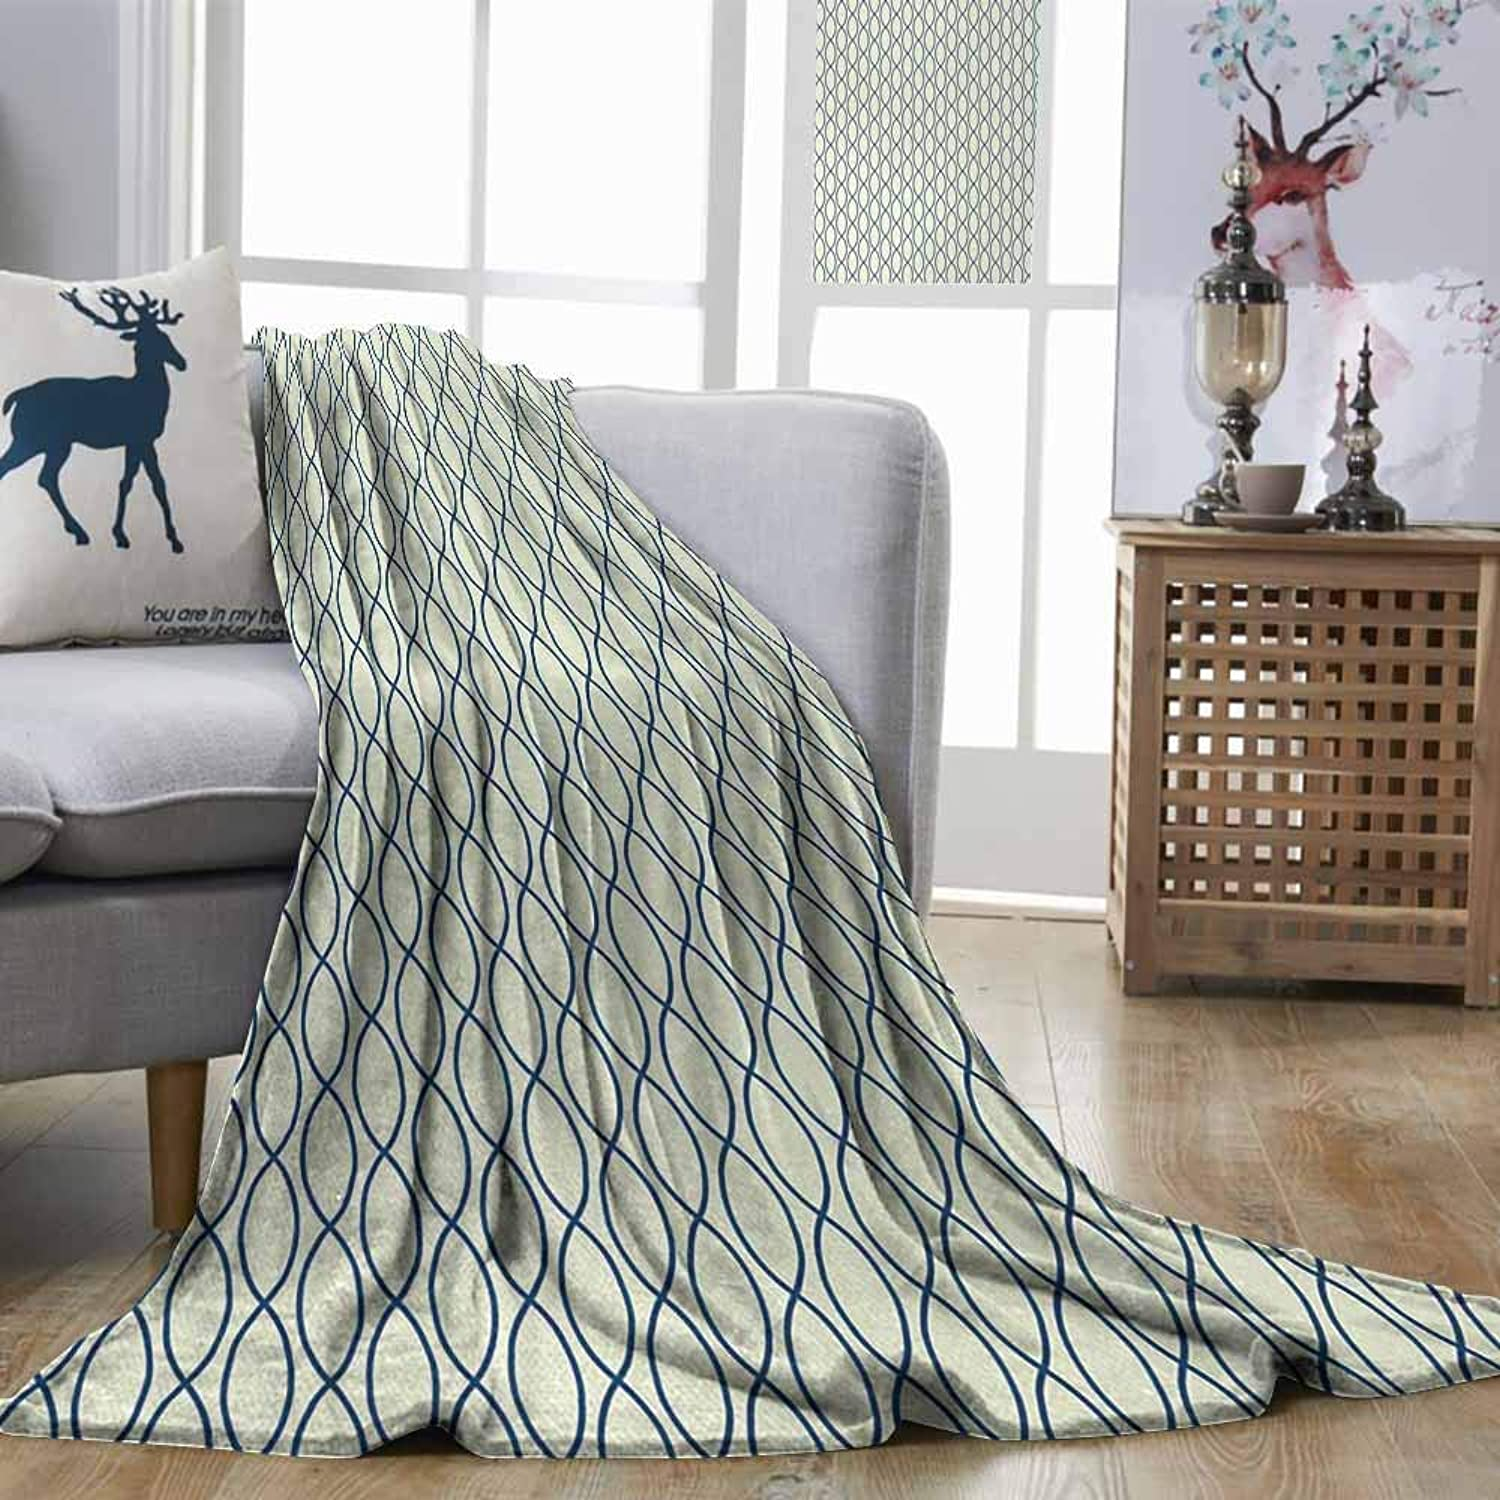 Fashion Throwing Blanket Abstract greenical Curvy Lines Form Elliptic Shapes Fishing Net Lattice Pattern Light Yellow Navy bluee Print Summer Quilt Comforter W51 xL60